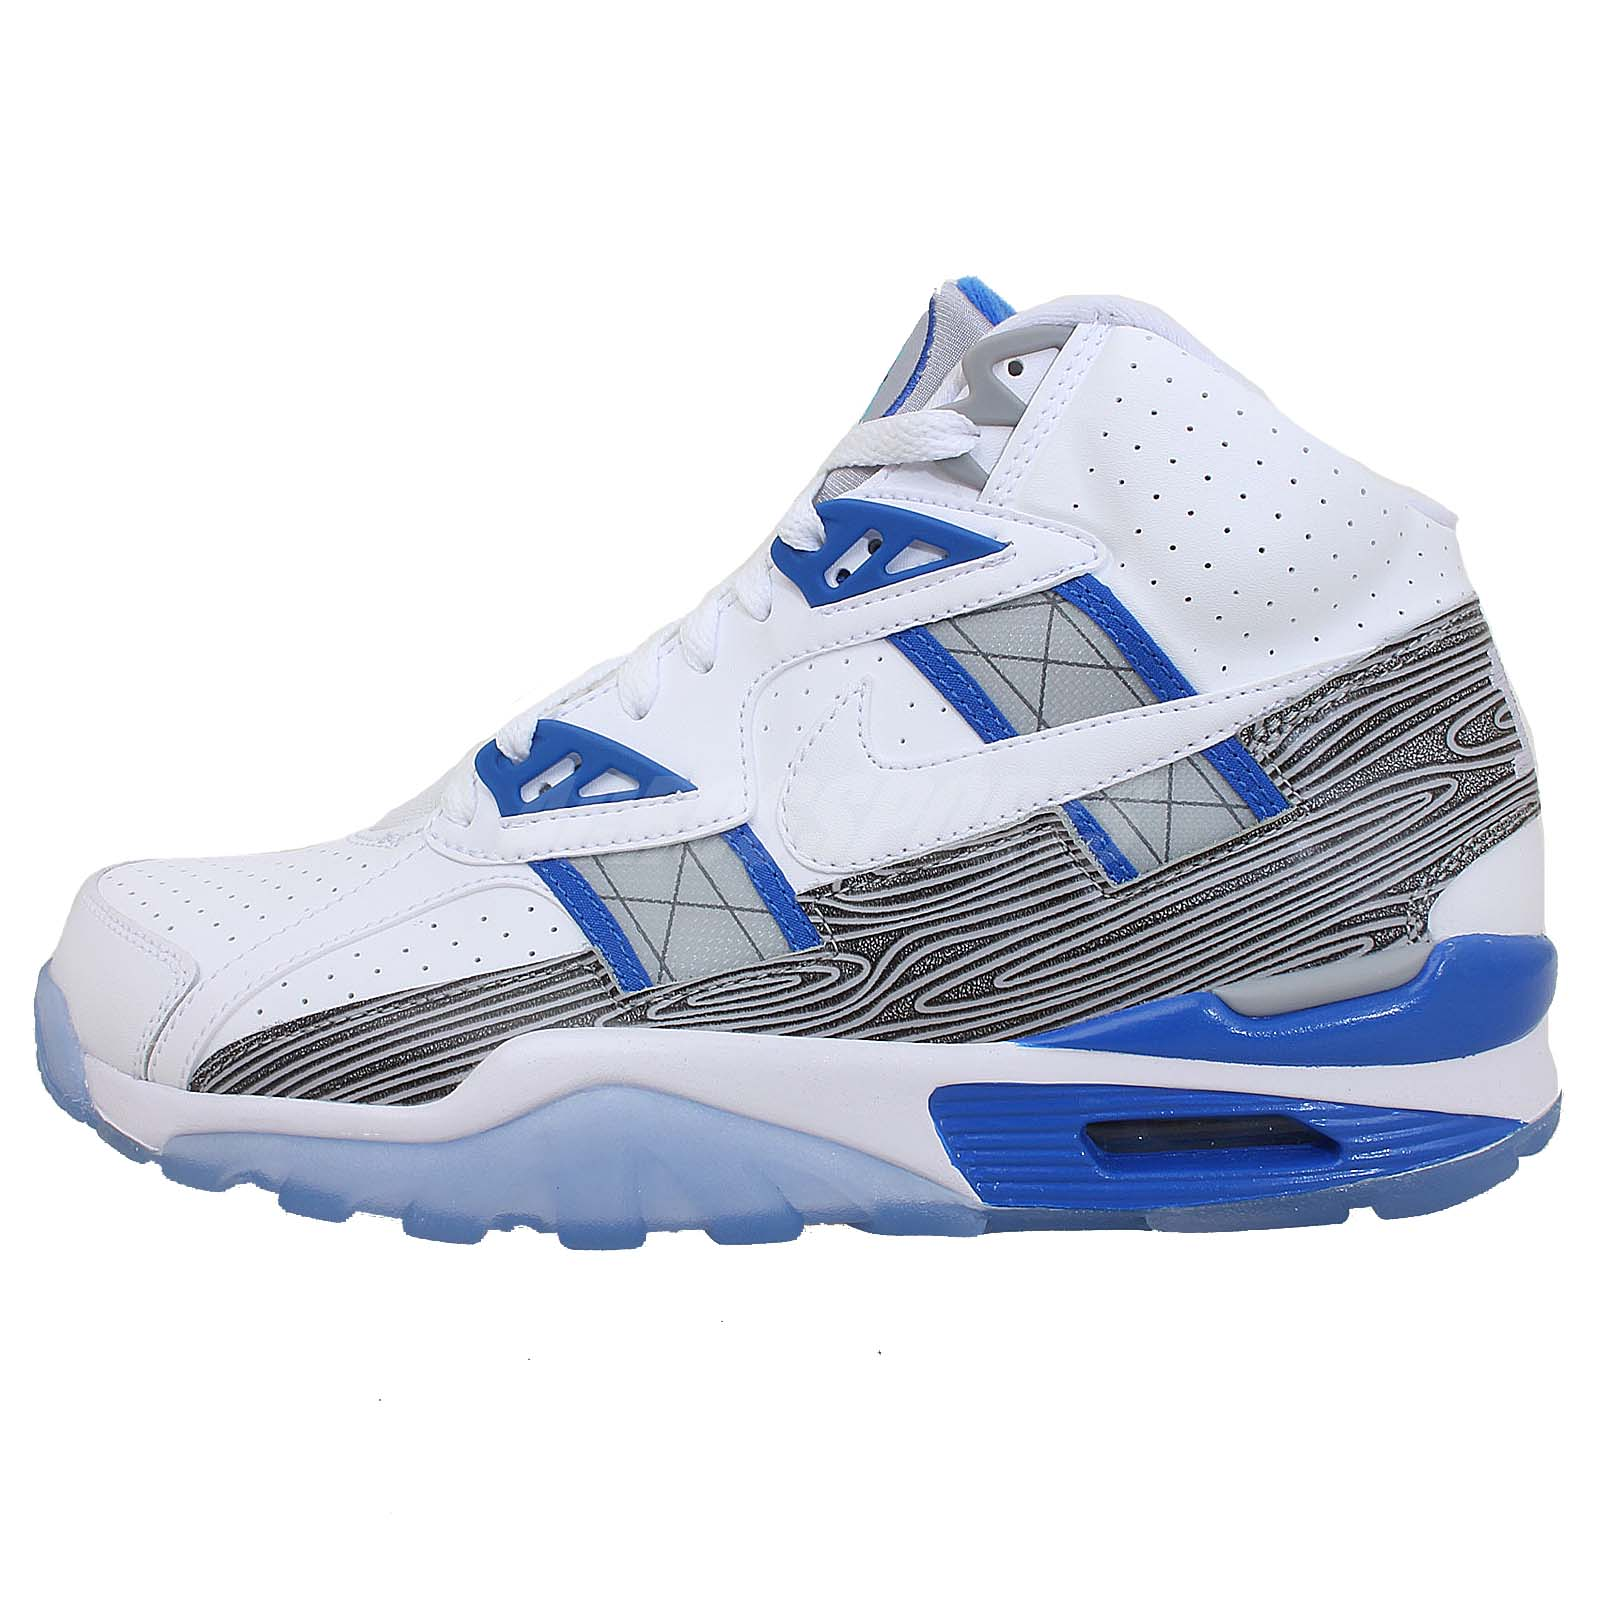 Nike Air Trainer Sc High Prm Qs Broken Bats Bo Jackson